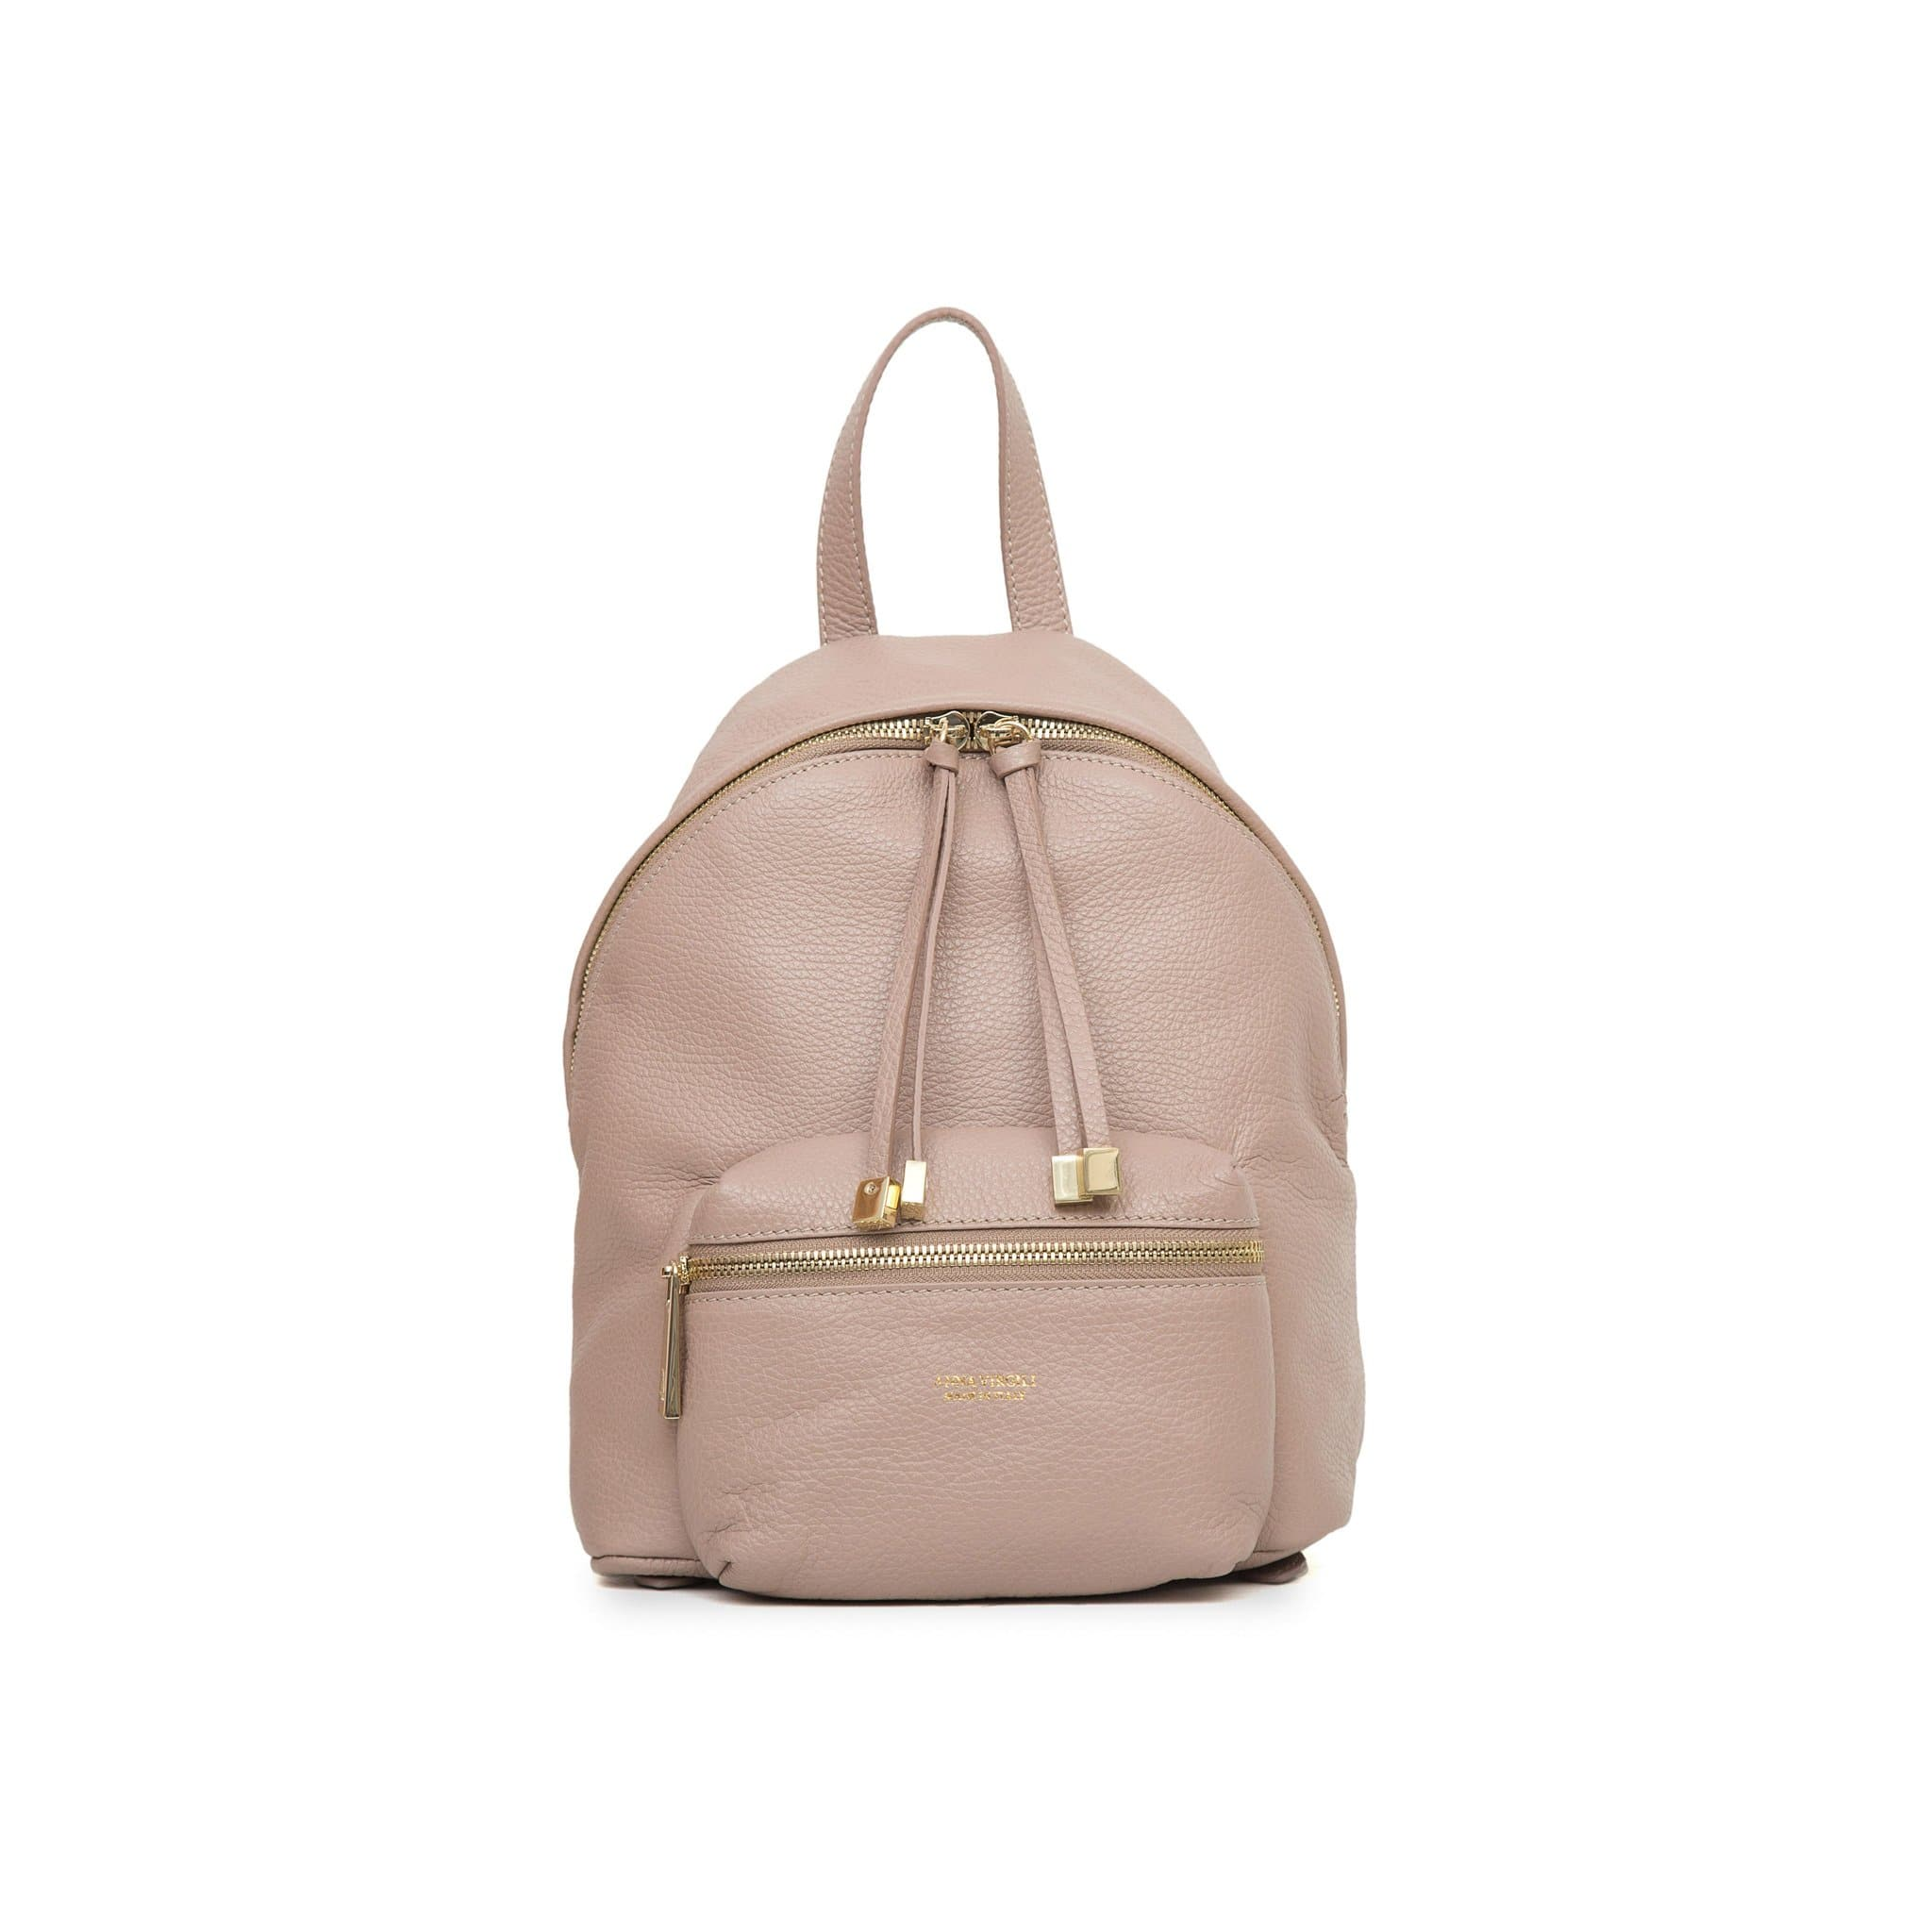 Alessia Rimini Leather Backpack - Nude